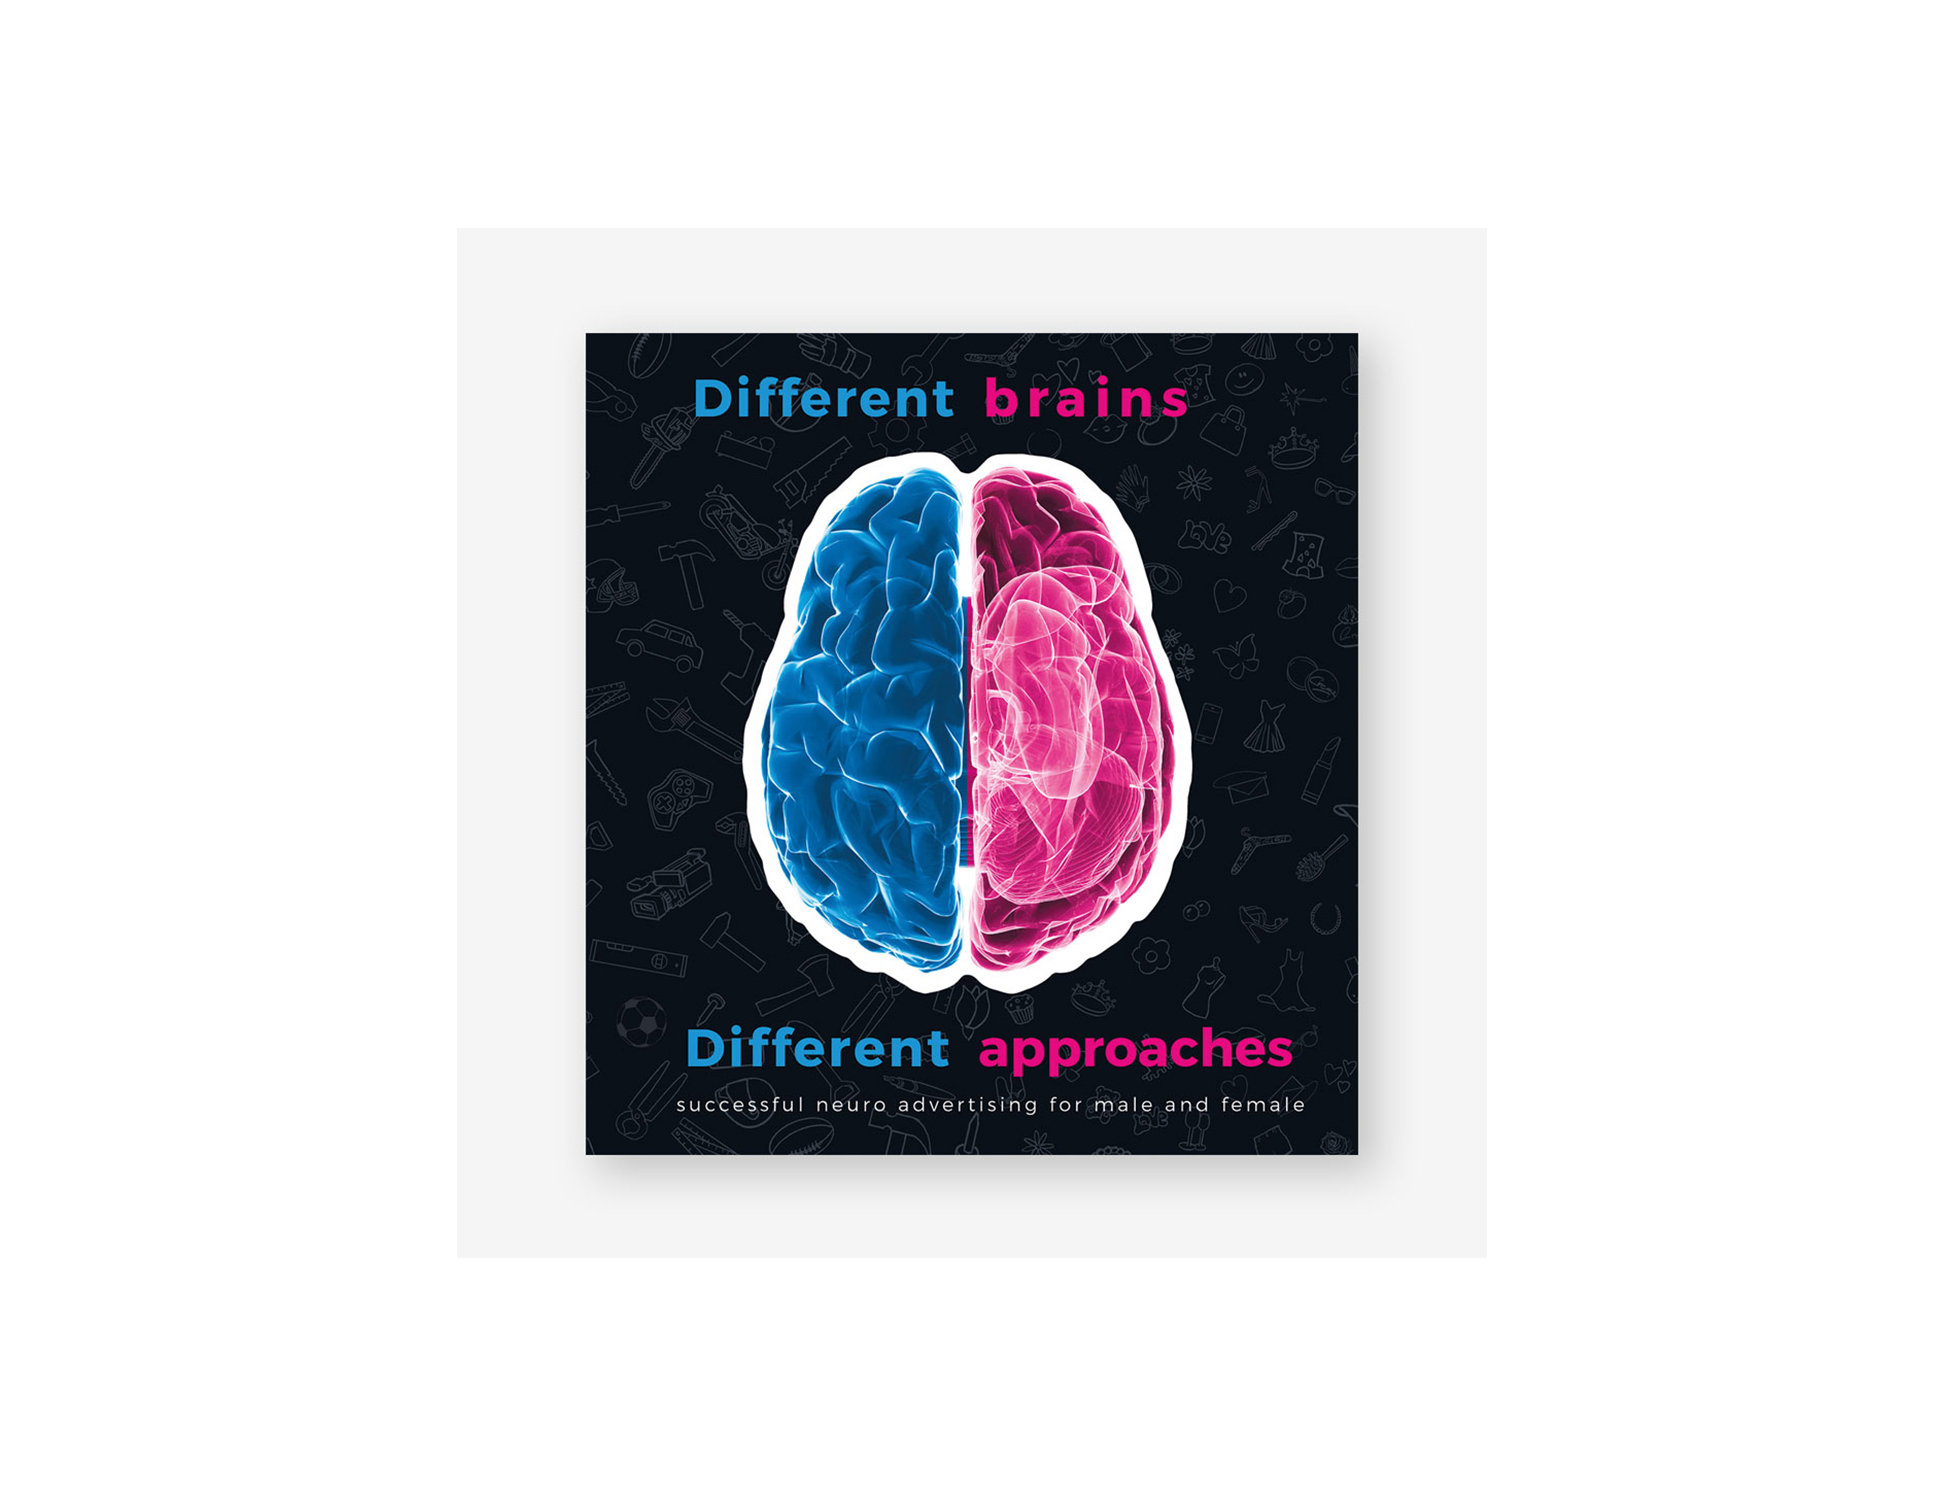 Different Brains, Different Approaches: Successful Neuro Advertising for Male and Female